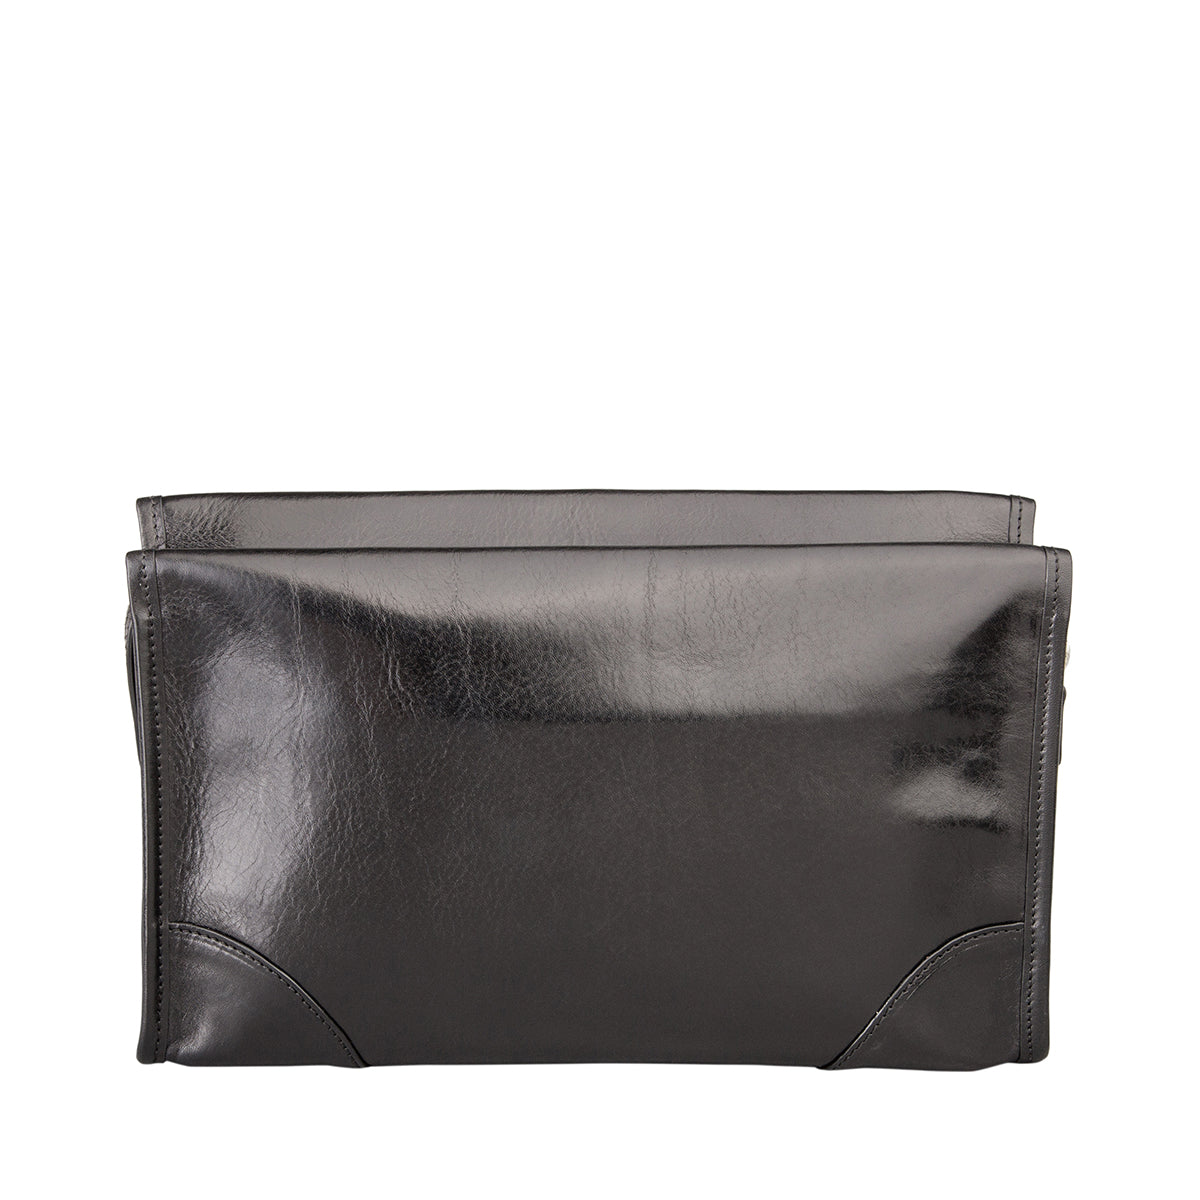 Image 4 of the 'Tanta' Black Veg-Tanned Leather Wash Bag